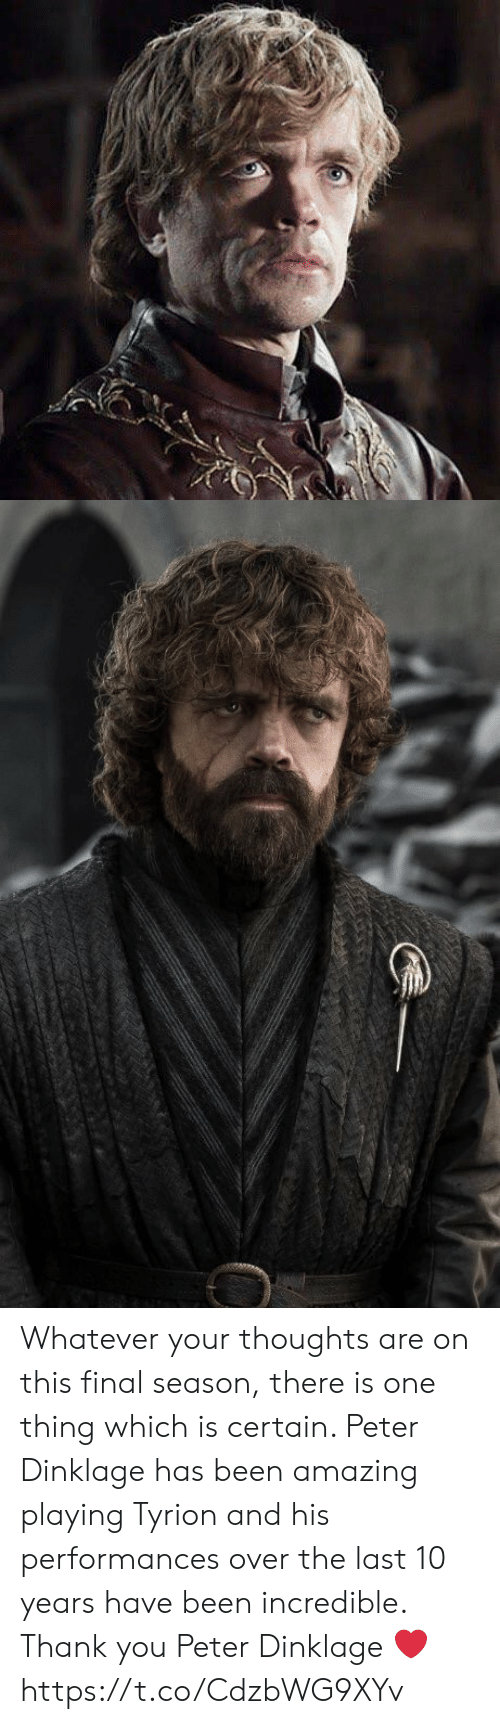 Memes, Thank You, and Peter Dinklage: Whatever your thoughts are on this final season, there is one thing which is certain. Peter Dinklage has been amazing playing Tyrion and his performances over the last 10 years have been incredible. Thank you Peter Dinklage ❤️ https://t.co/CdzbWG9XYv